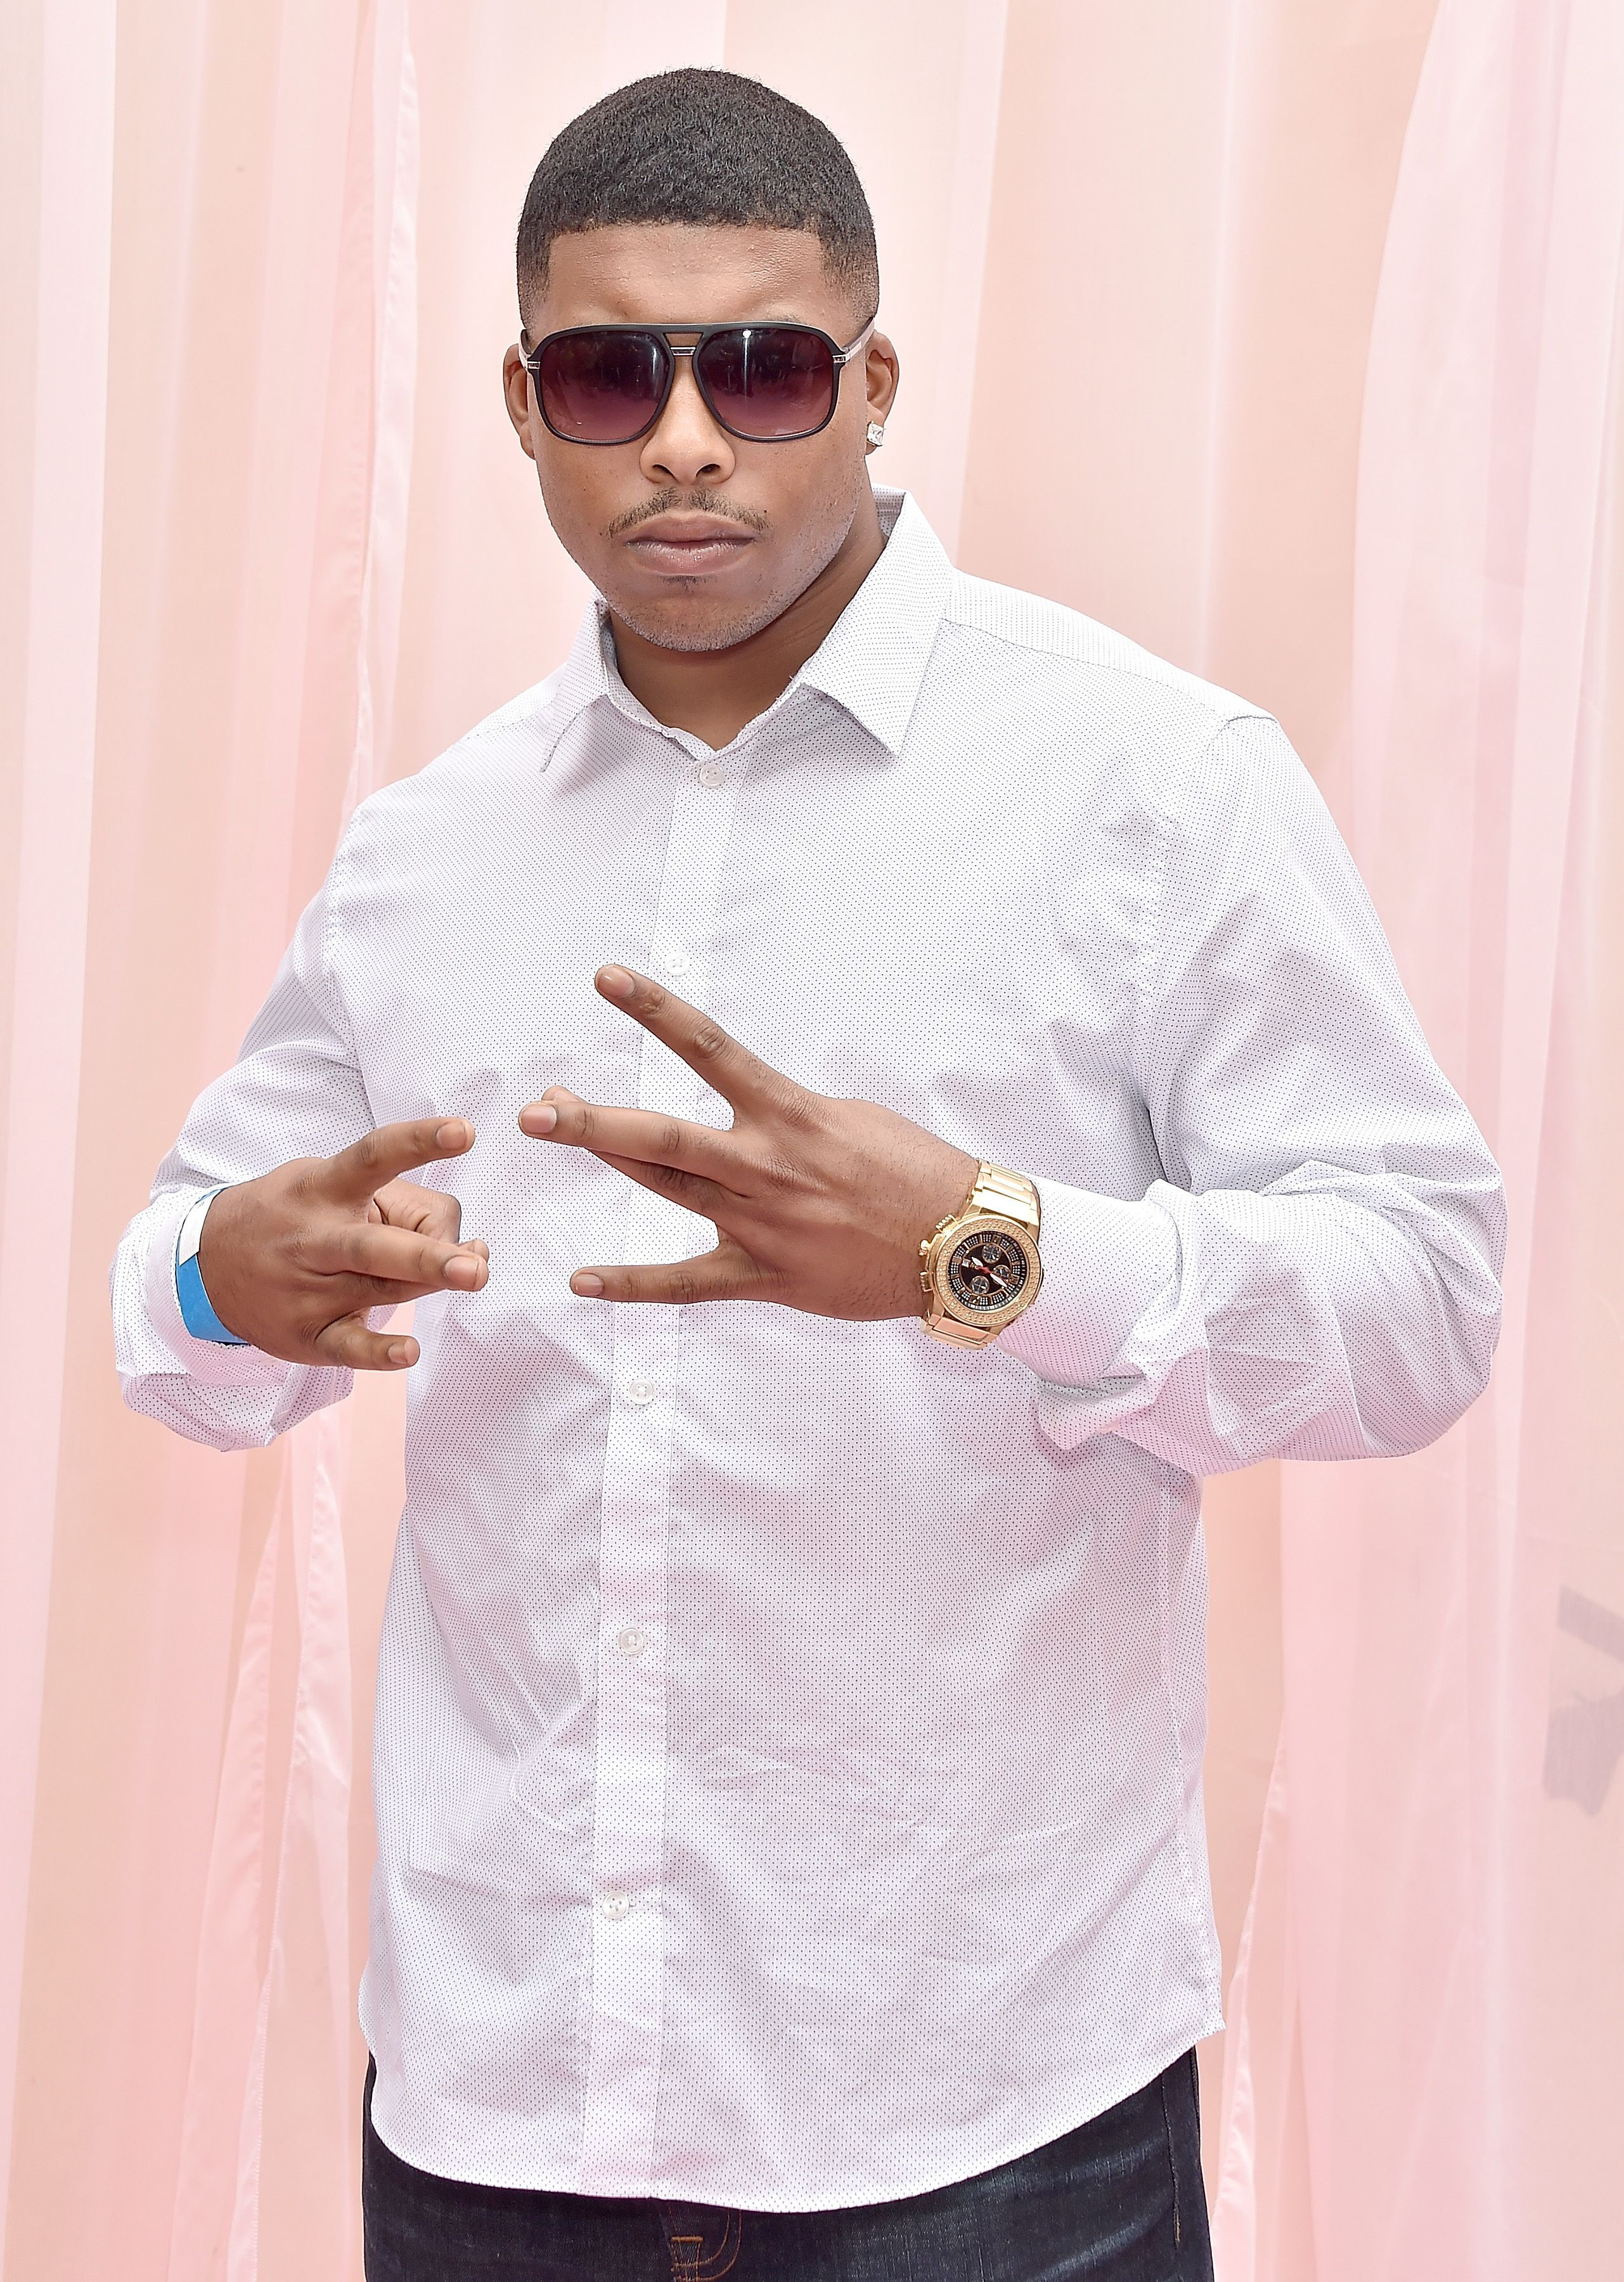 Suge Jacob Knight arrives at Hollywood Unlocked Social Impact Brunch Powered By PrettyLittleThing.com at The Sunset Room on June 22, 2019 in Hollywood, California. | Source: Getty Images